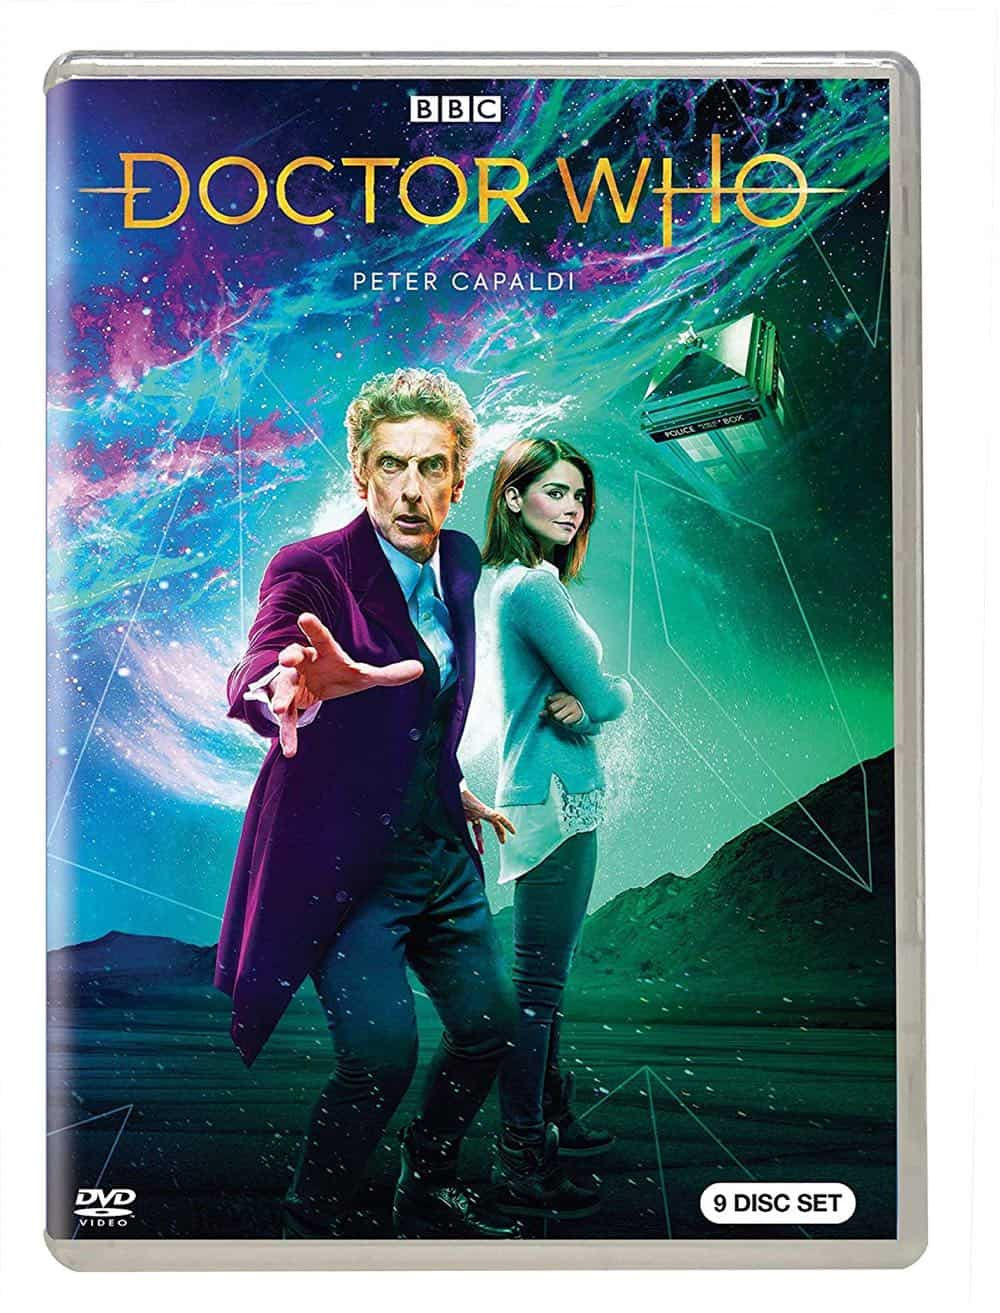 Doctor Who The Peter Capaldi Collection DVD